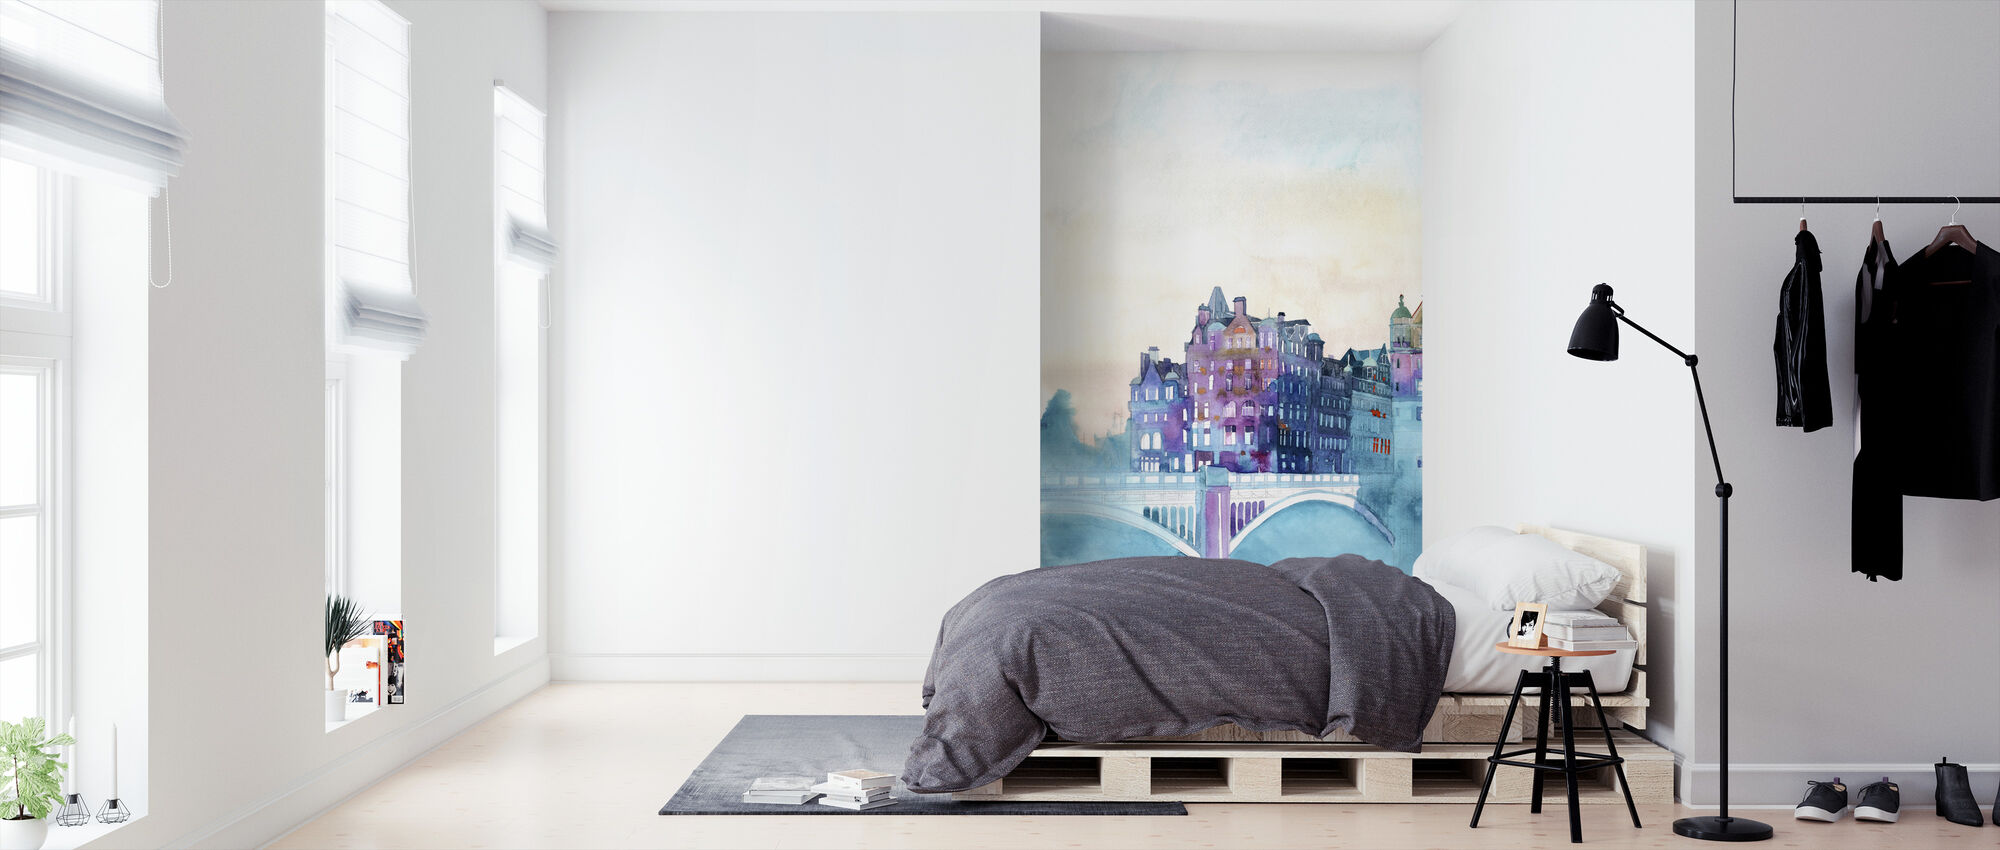 Winter in Edinburgh - Wallpaper - Bedroom